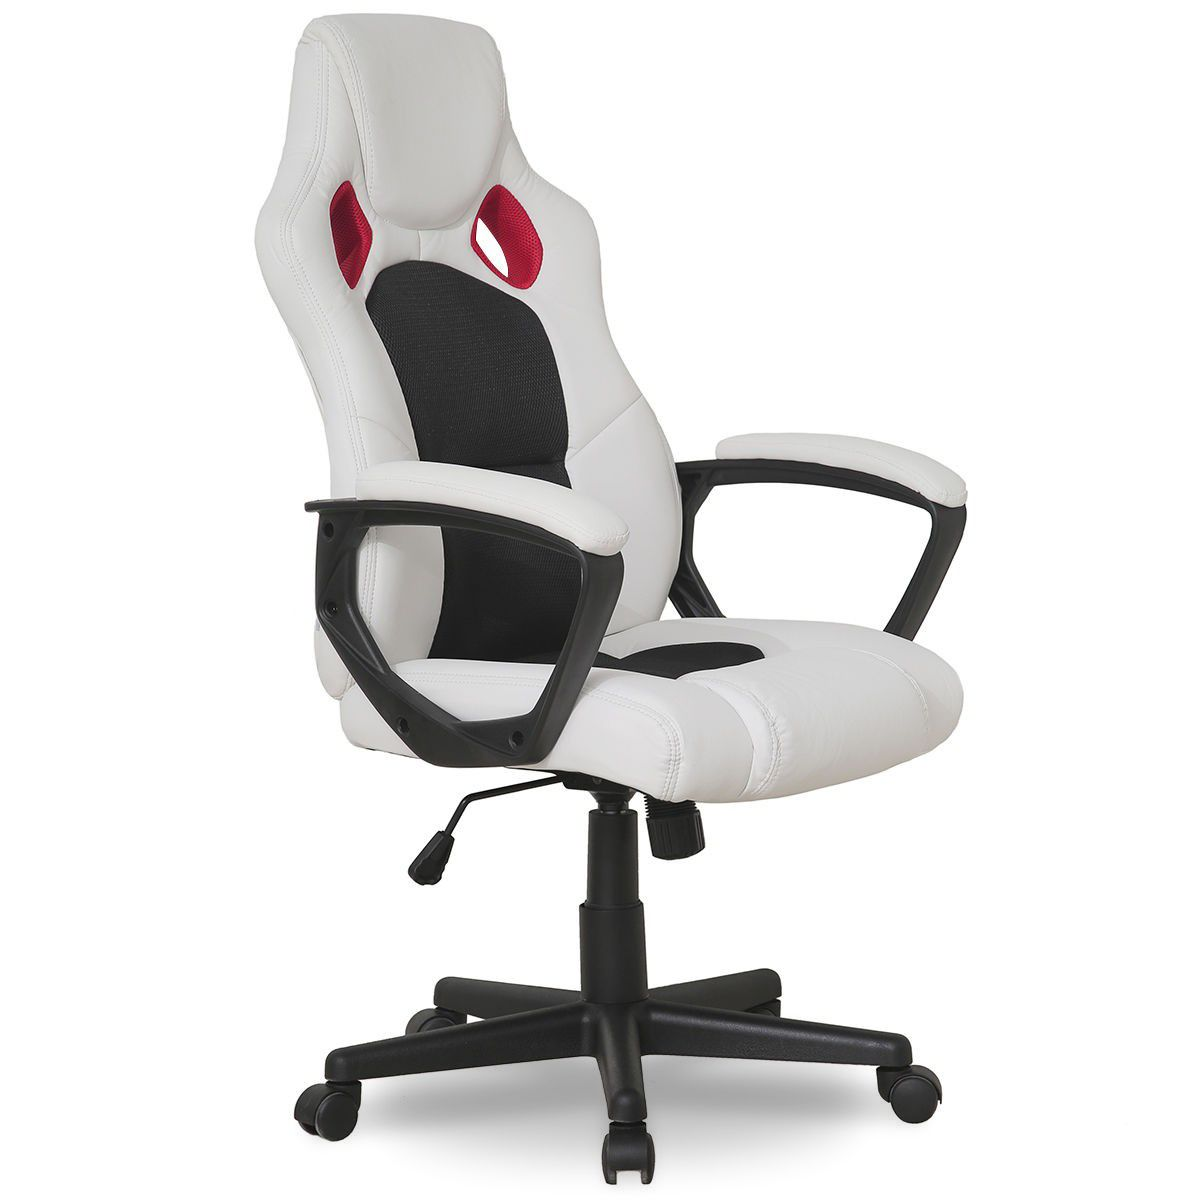 Executive adjustable high back swivel gaming chair with